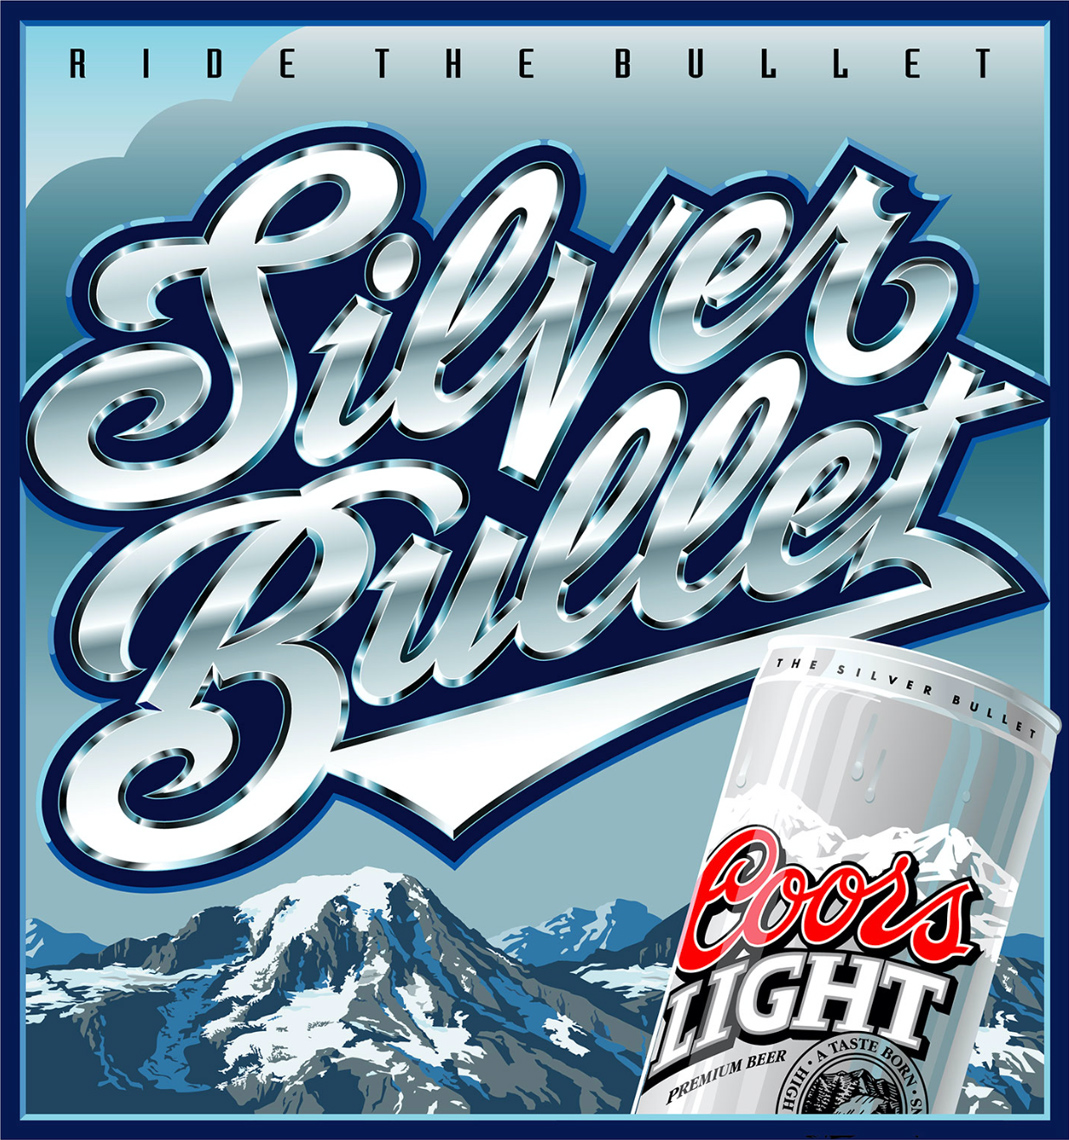 Kelly Hume Illustration silver bullet coors light